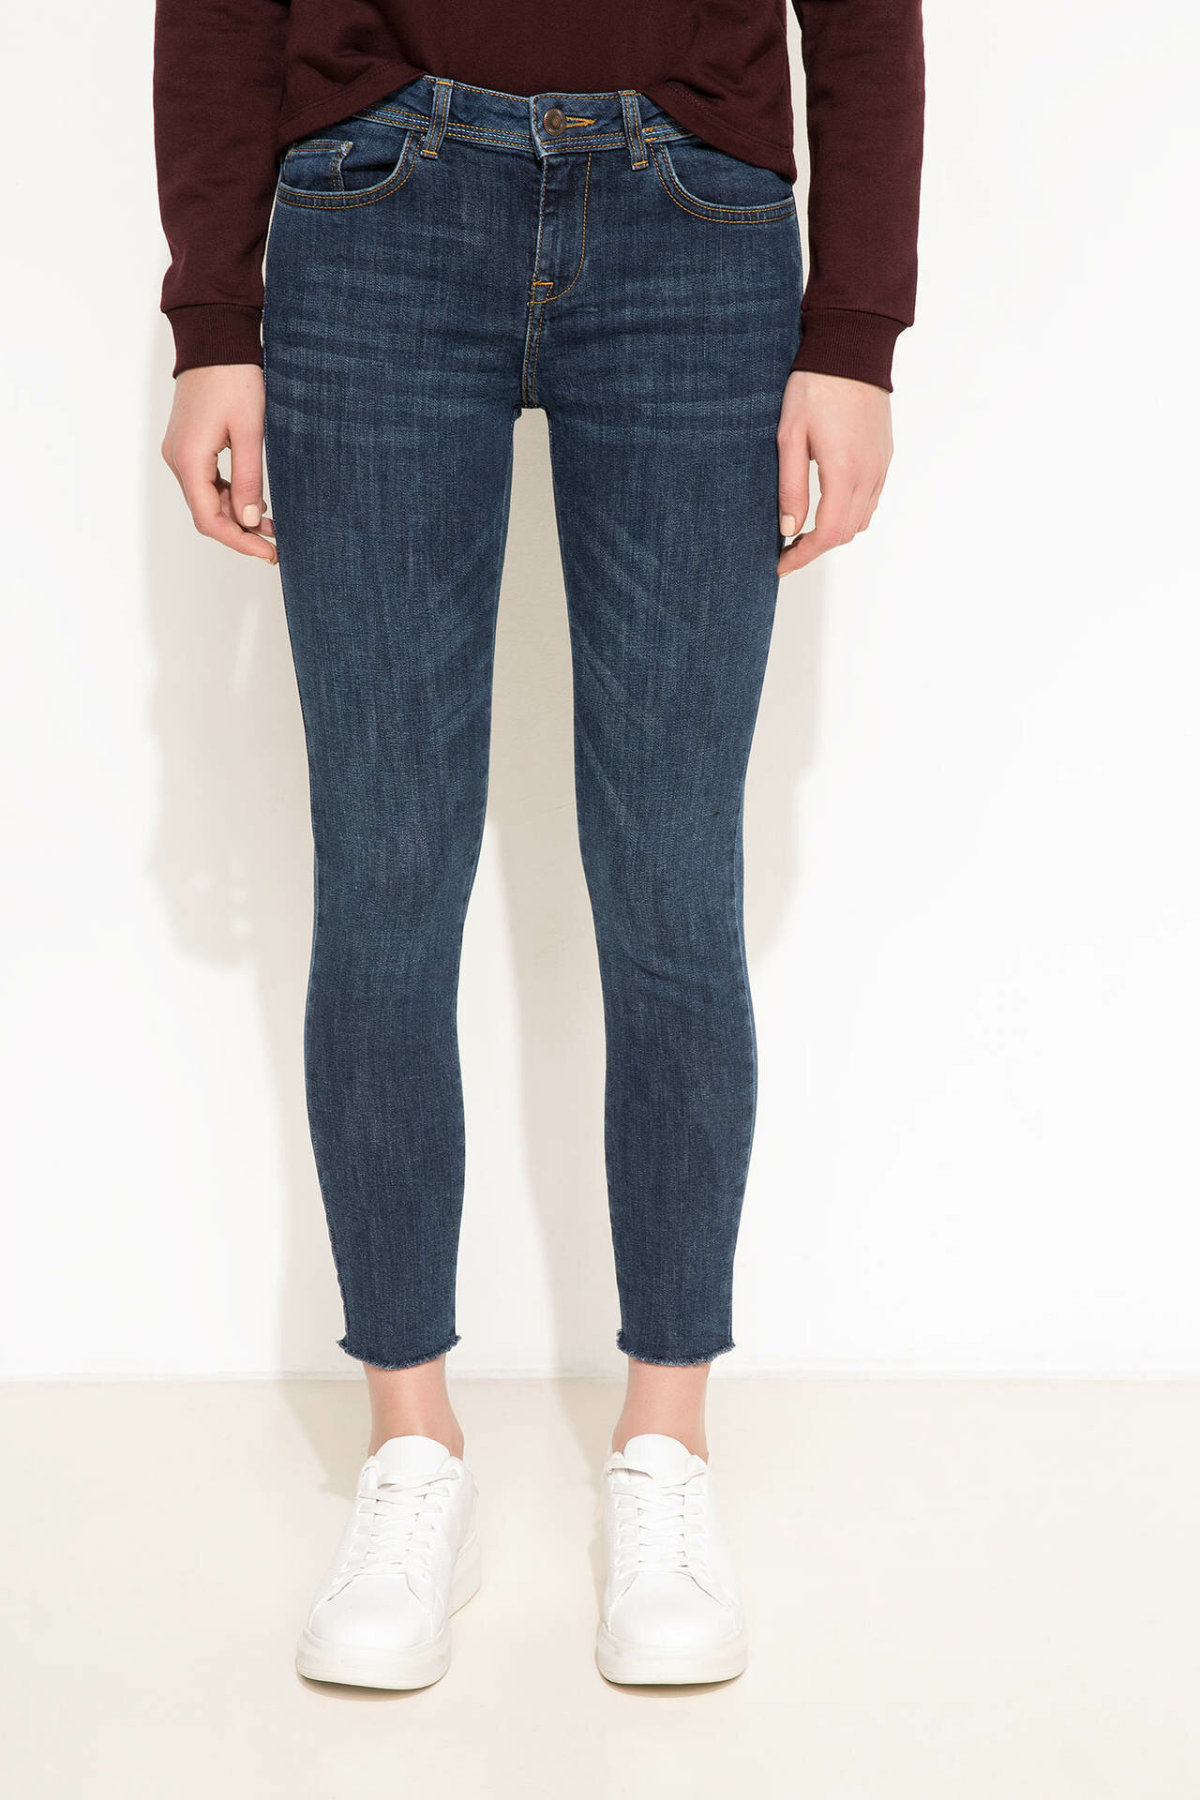 DeFacto Blue Women Worn Hole Skinny Jeans Denim Simple Mid-waist Denim Stretch Casual Nine Minutes Pencil Trousers-I7560AZ17CW-I7560AZ17CW